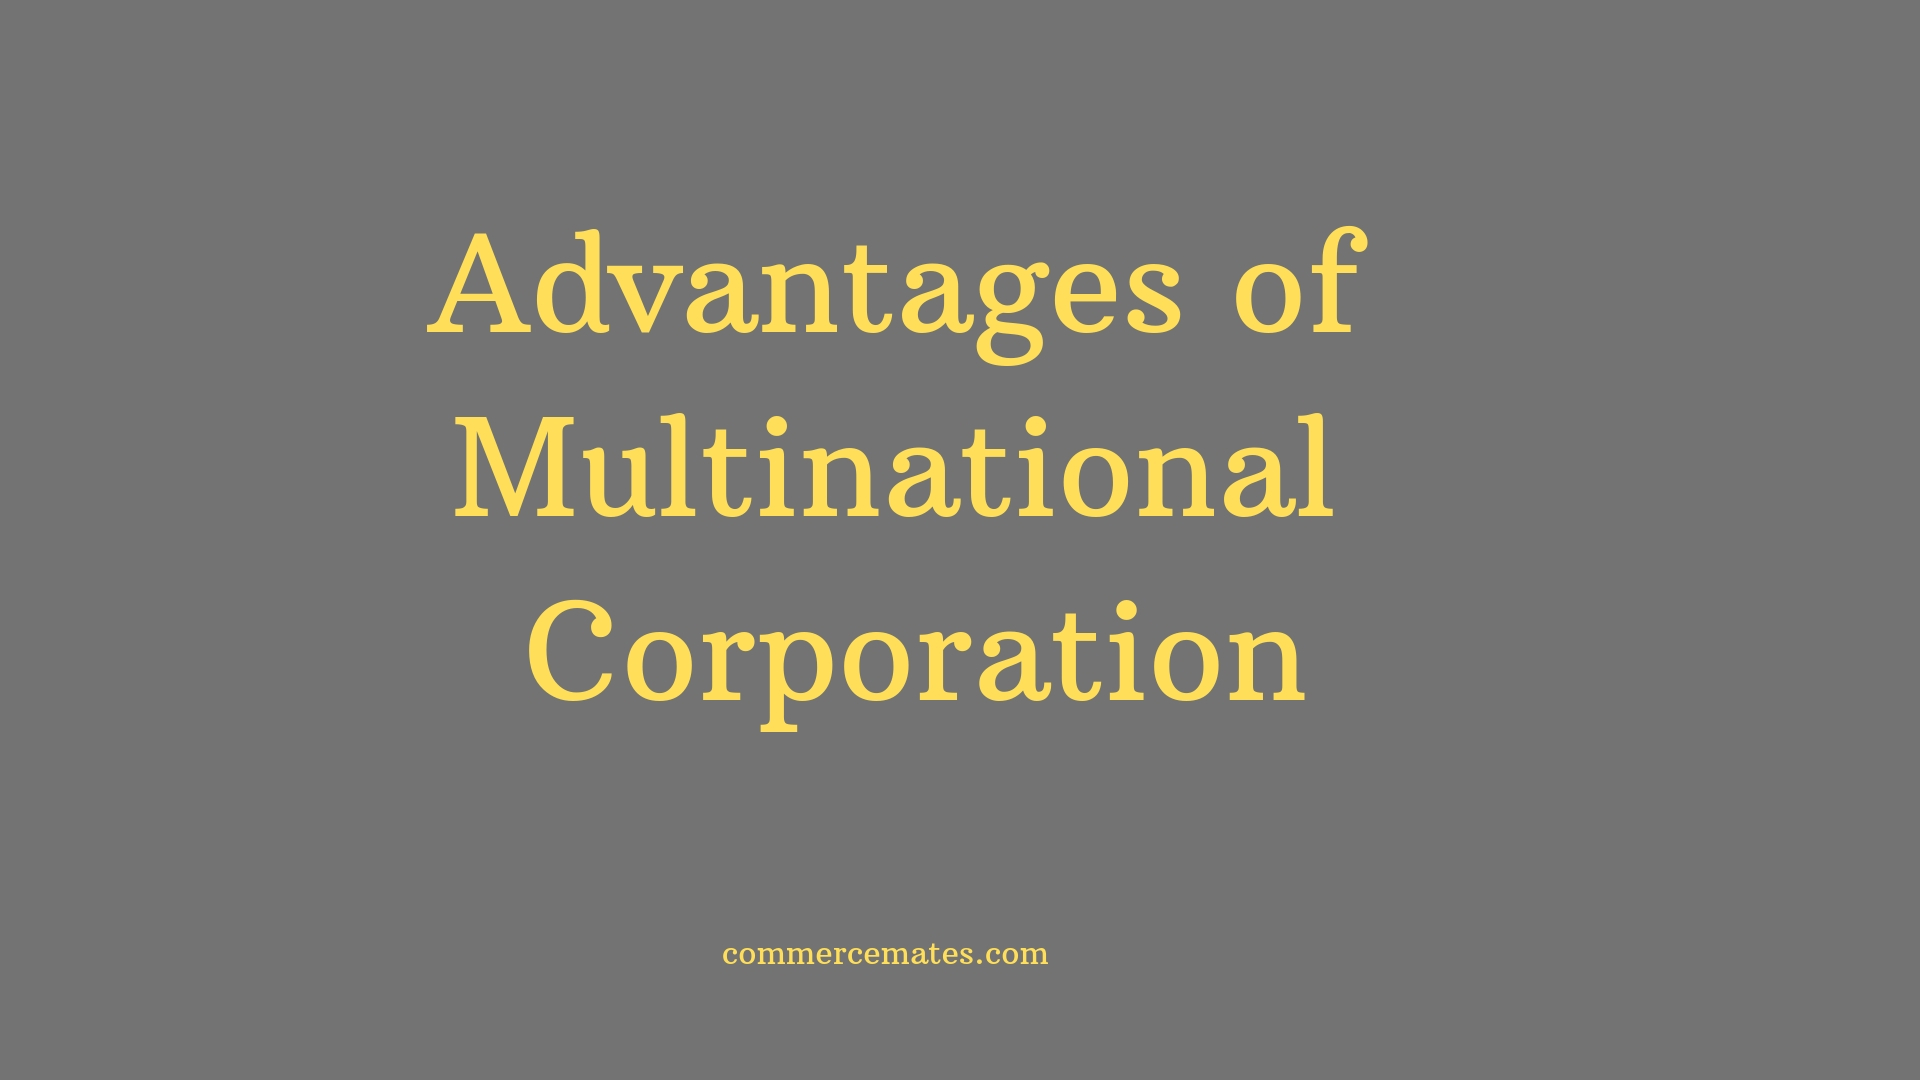 Advantages of Multinational Corporation